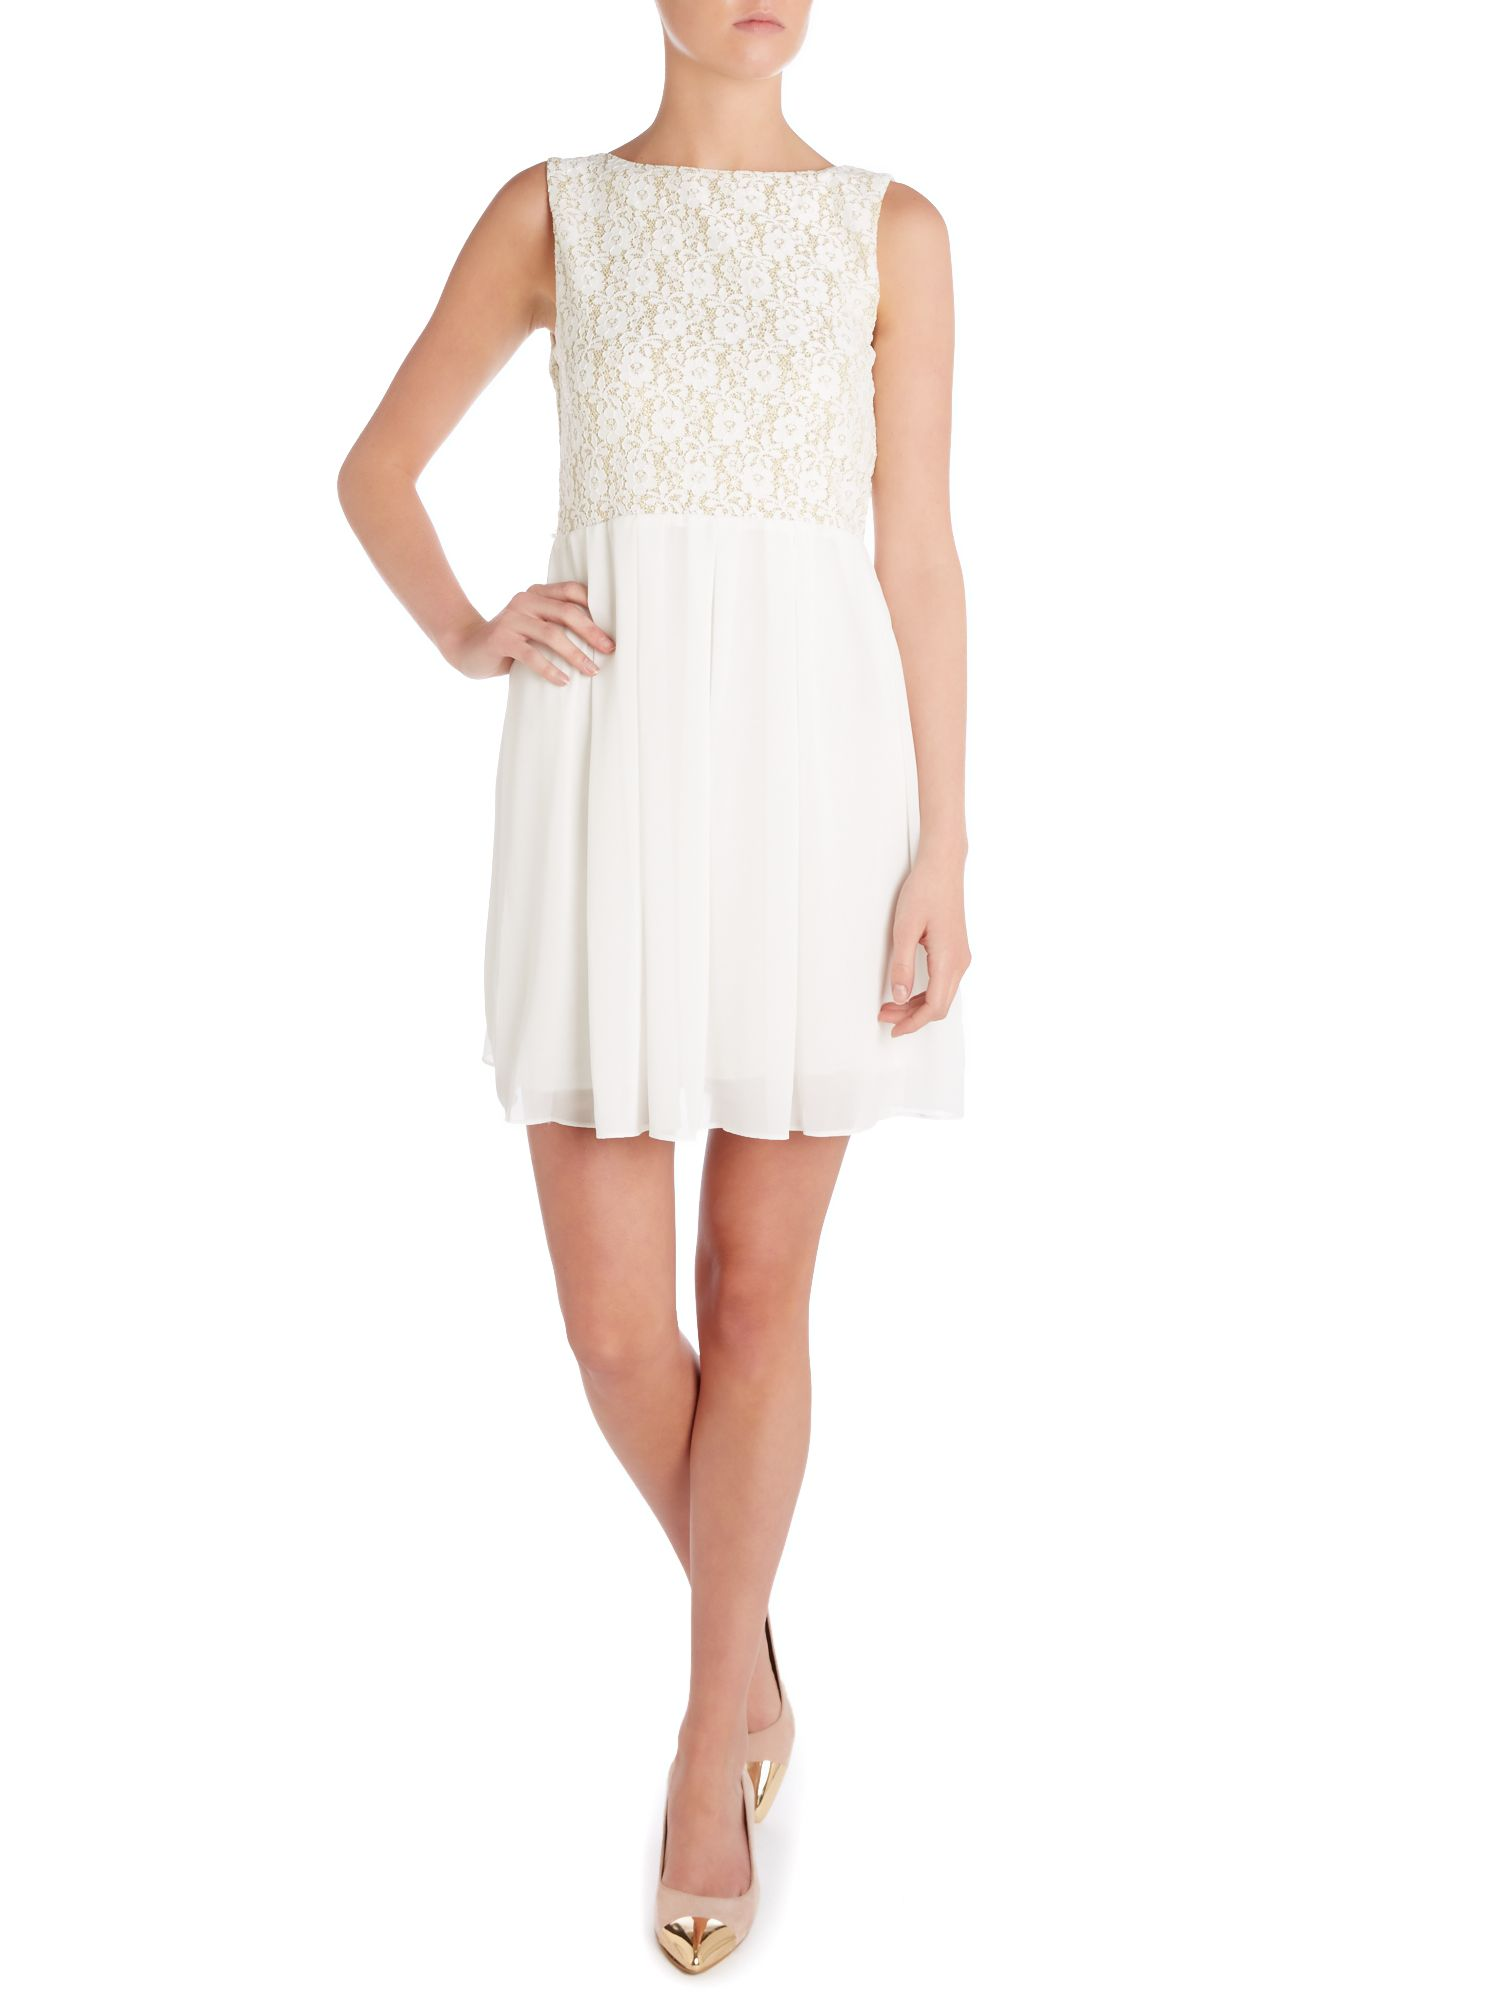 Embroidered lace top dress